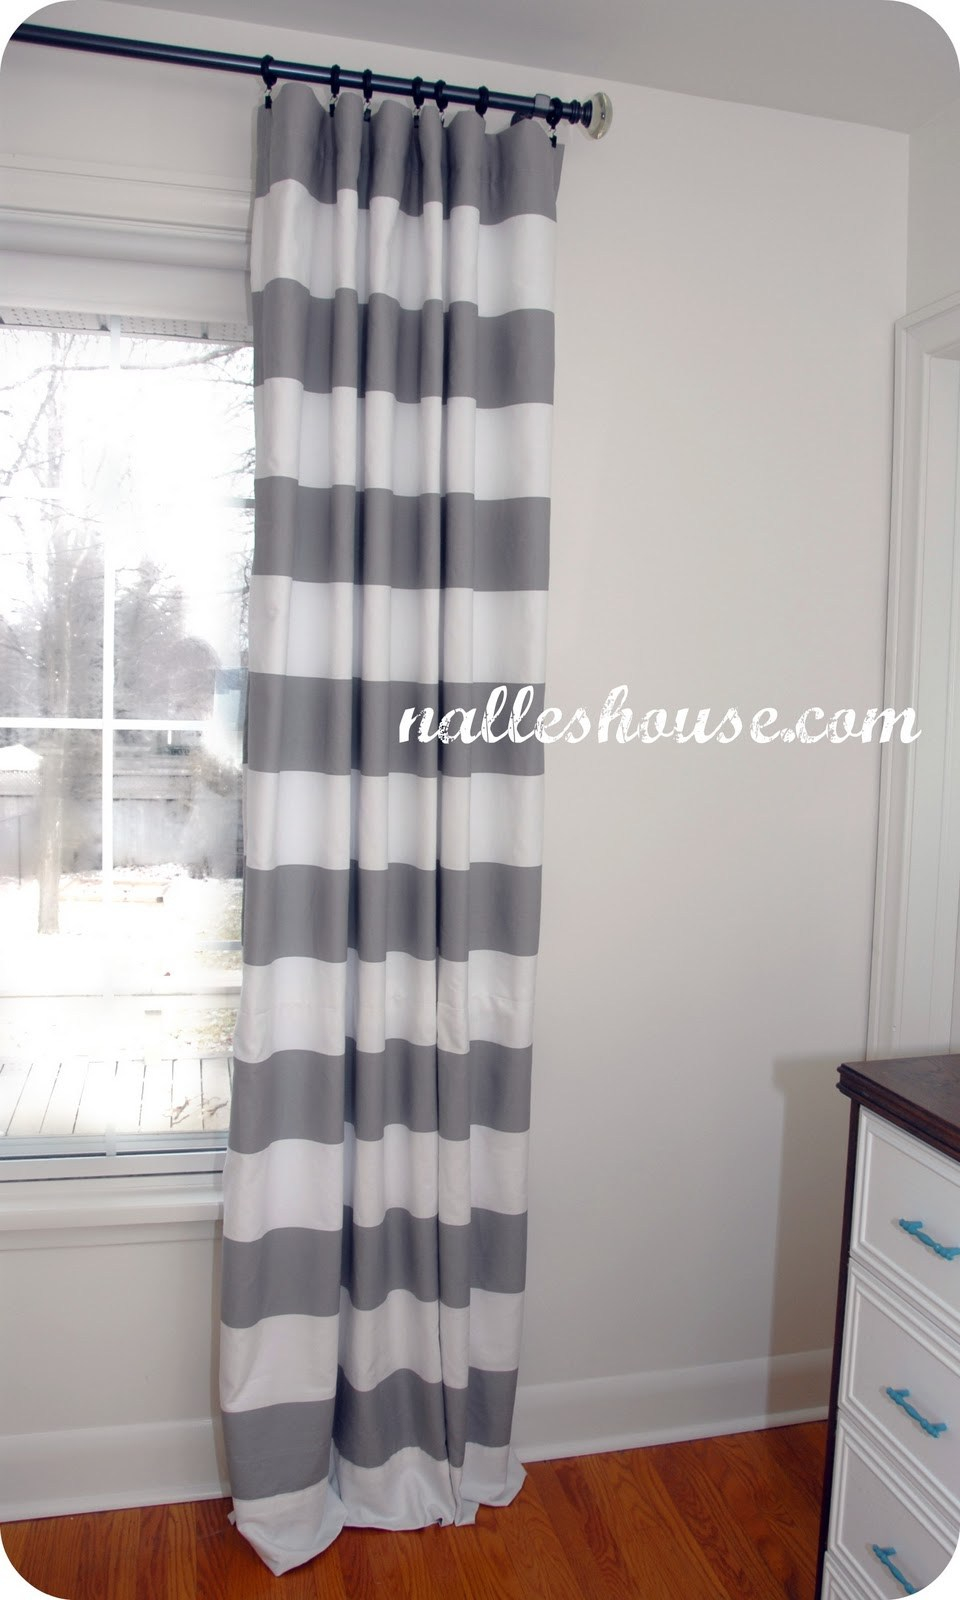 Cute Striped Fabric Shower Curtain Striped Linen Shower Curtain intended for size 960 X 1600